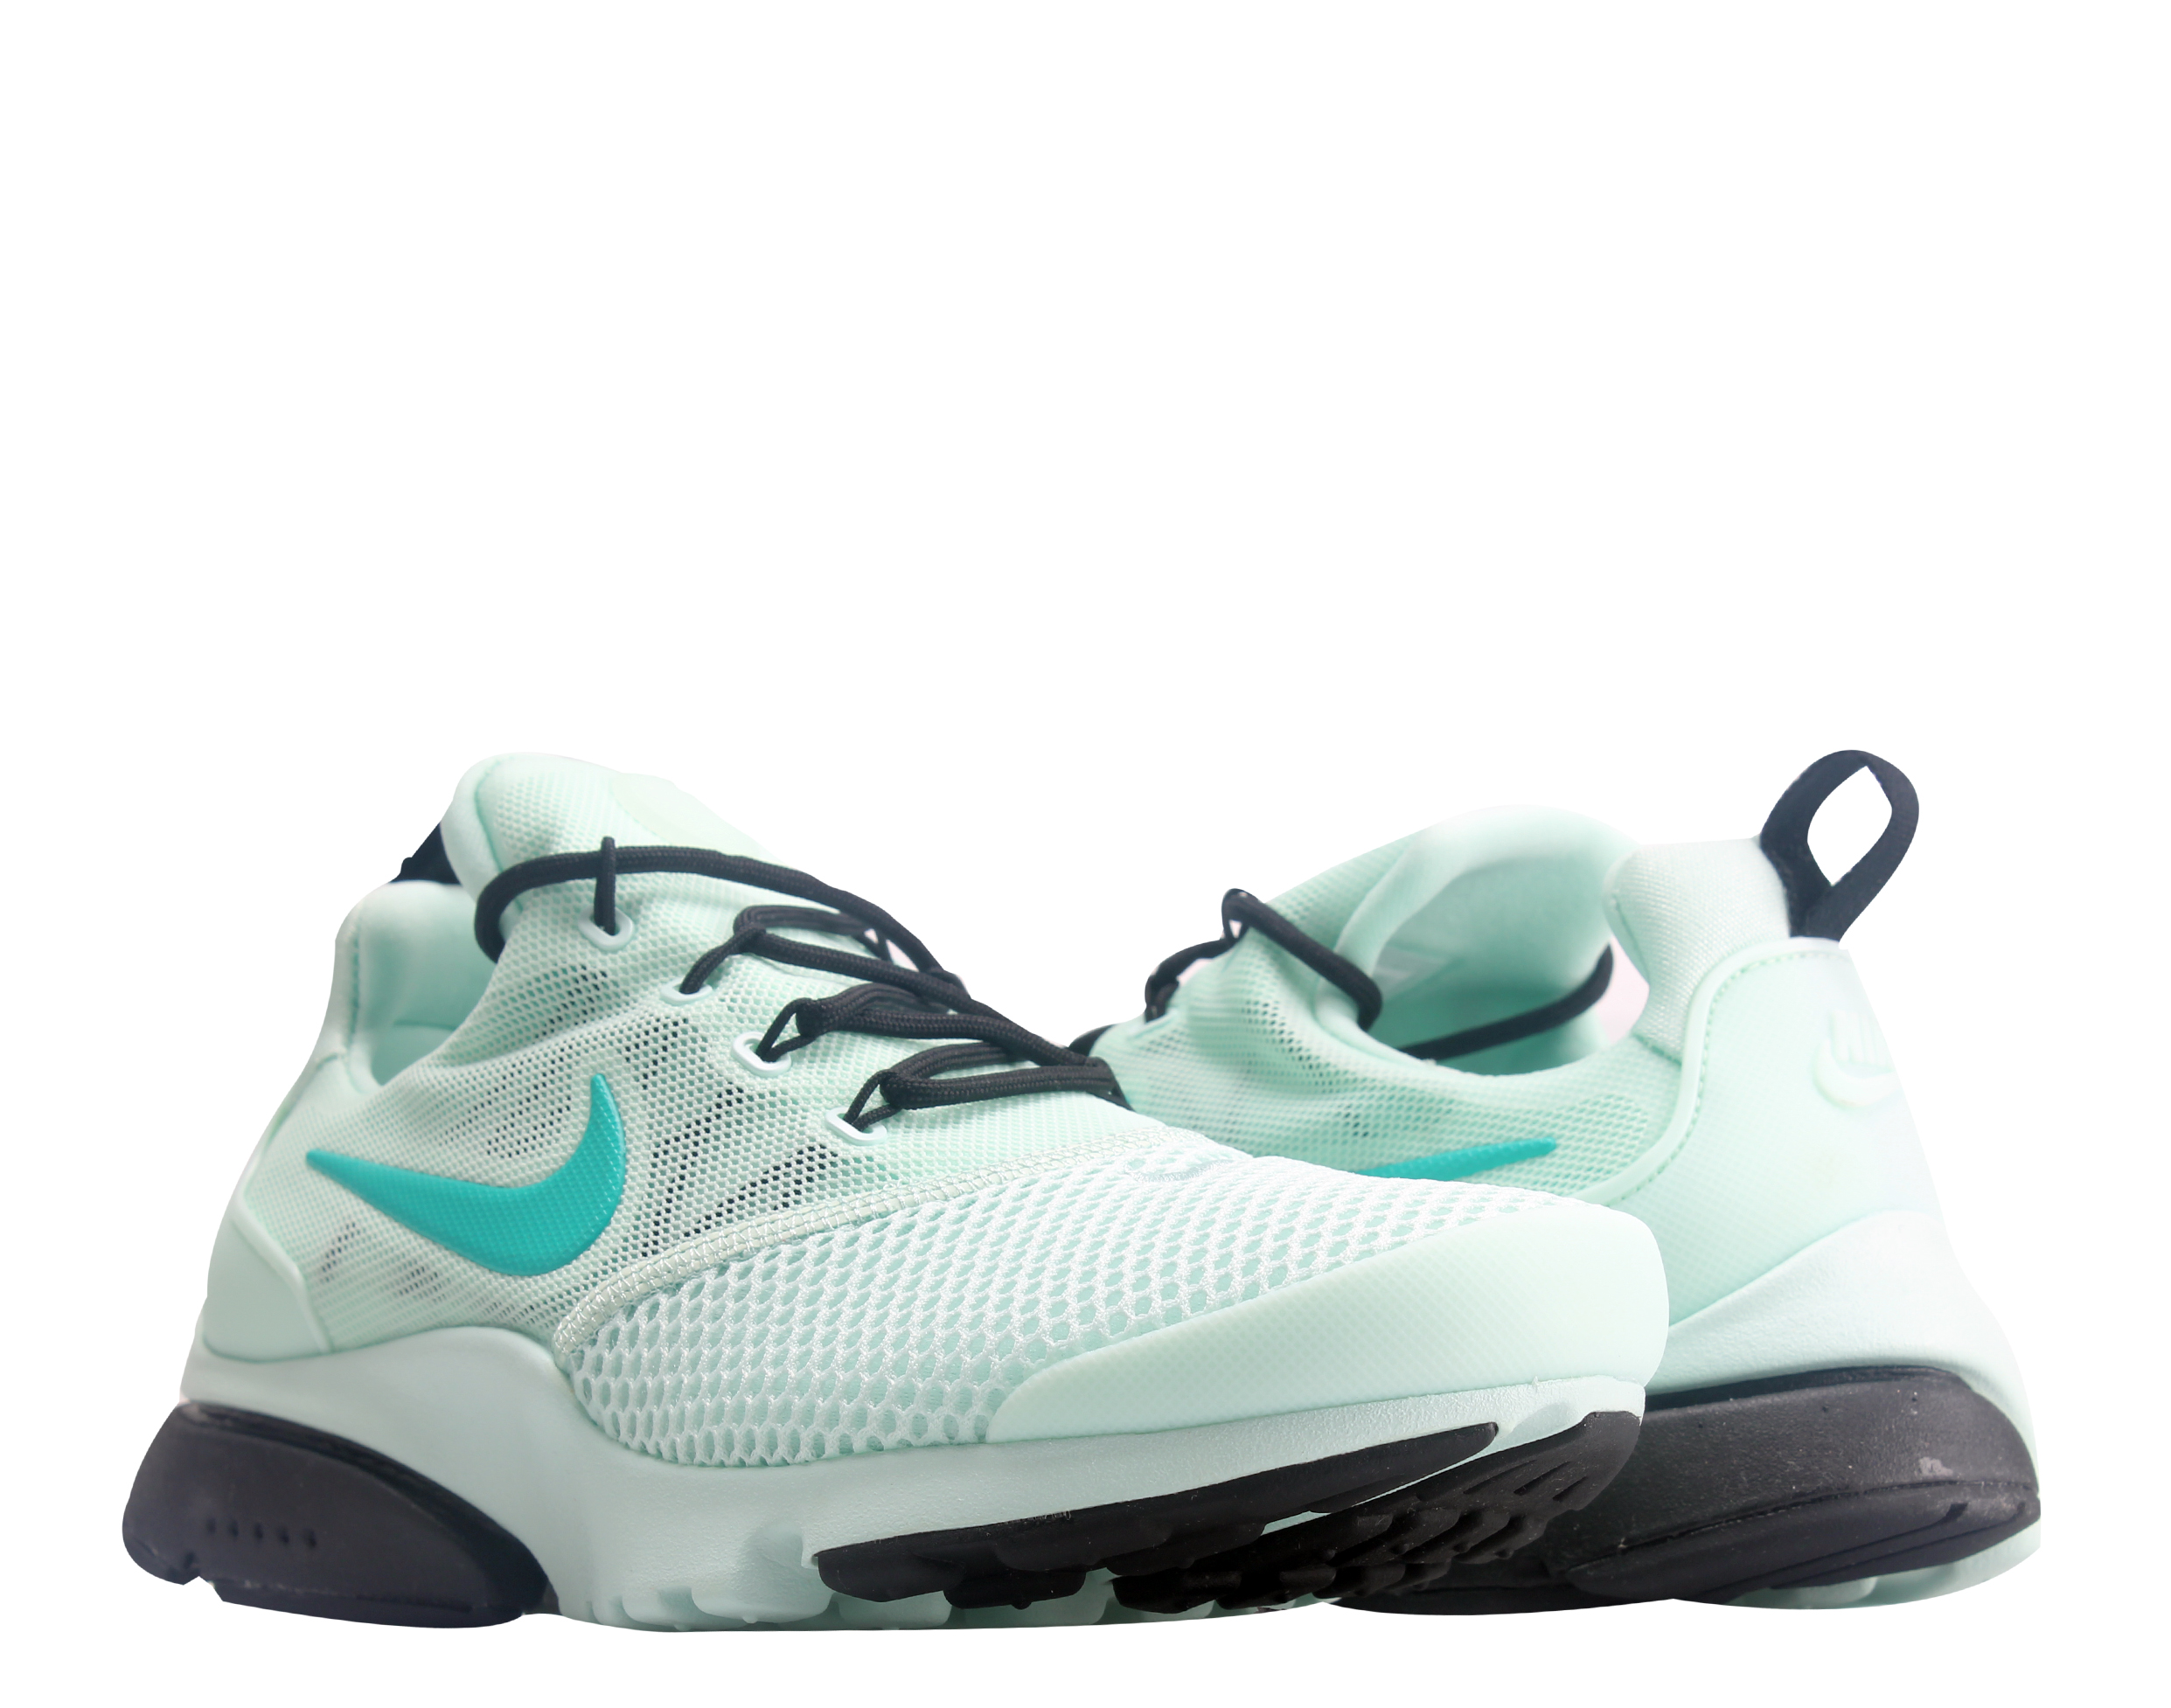 Nike Presto Fly Igloo/Clear Jade Black Mint Women's Running Shoes